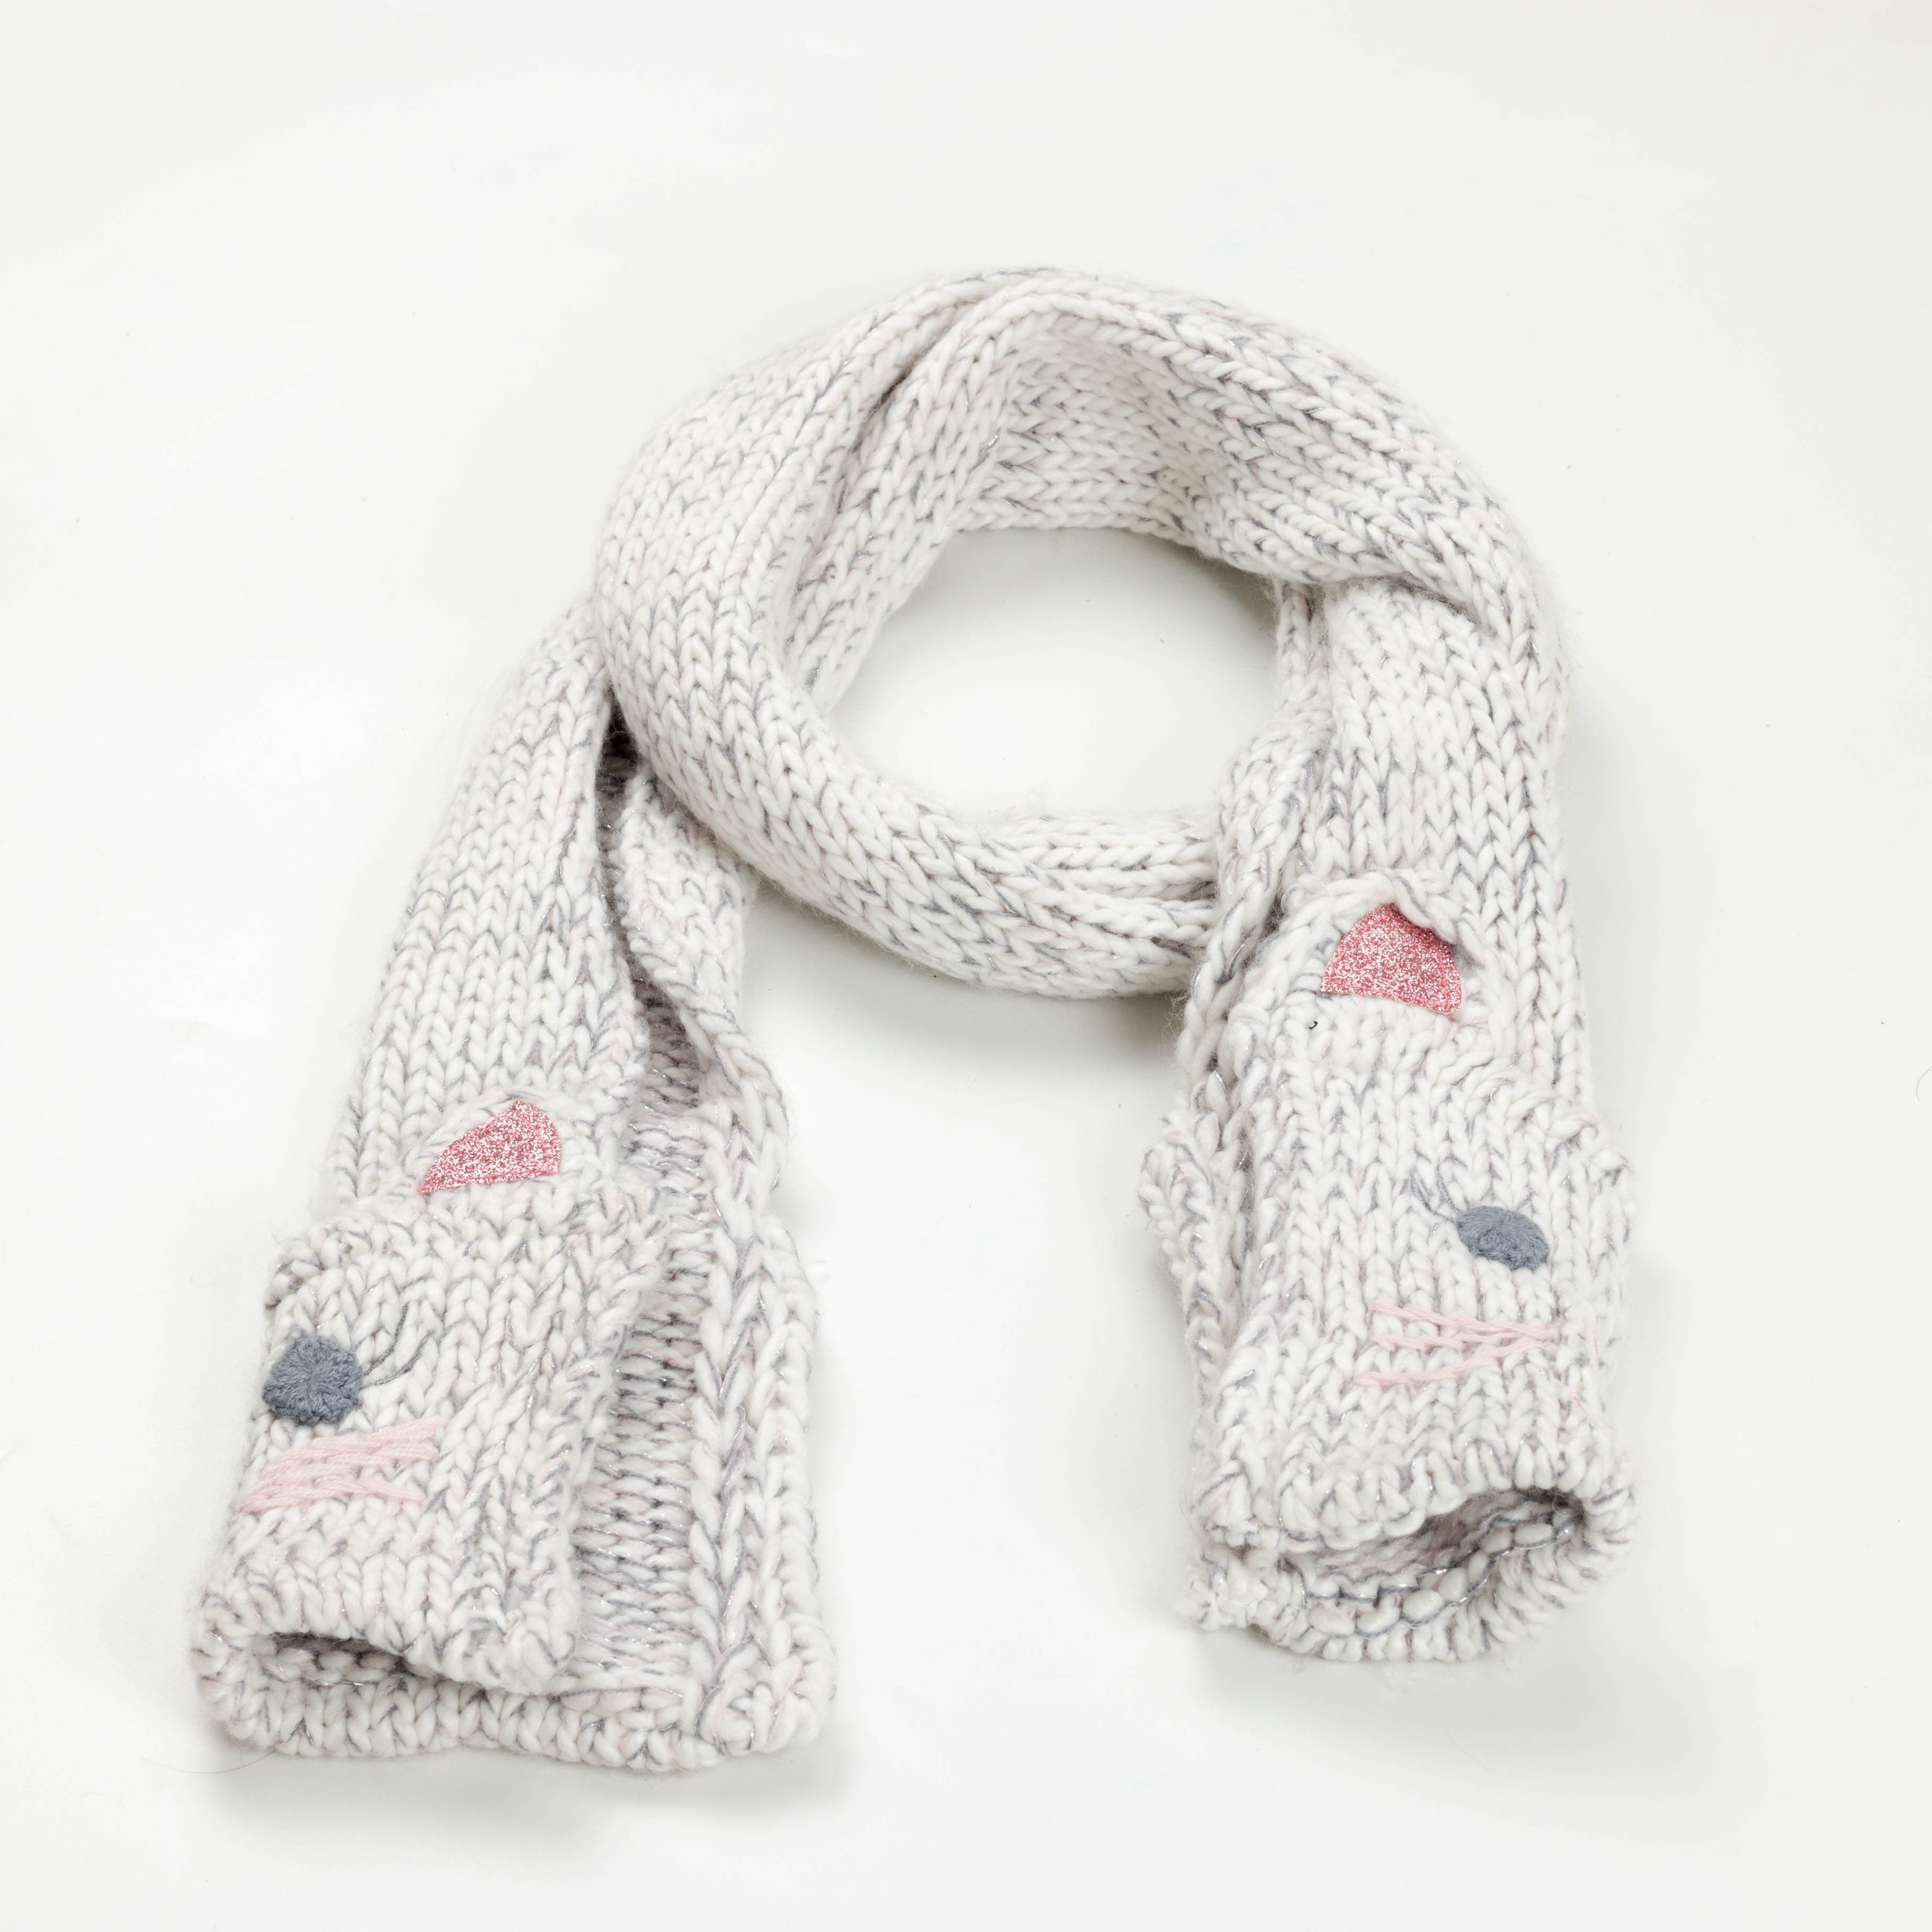 China Kids Fashion Scarf, China Kids Fashion Scarf Manufacturers and ...